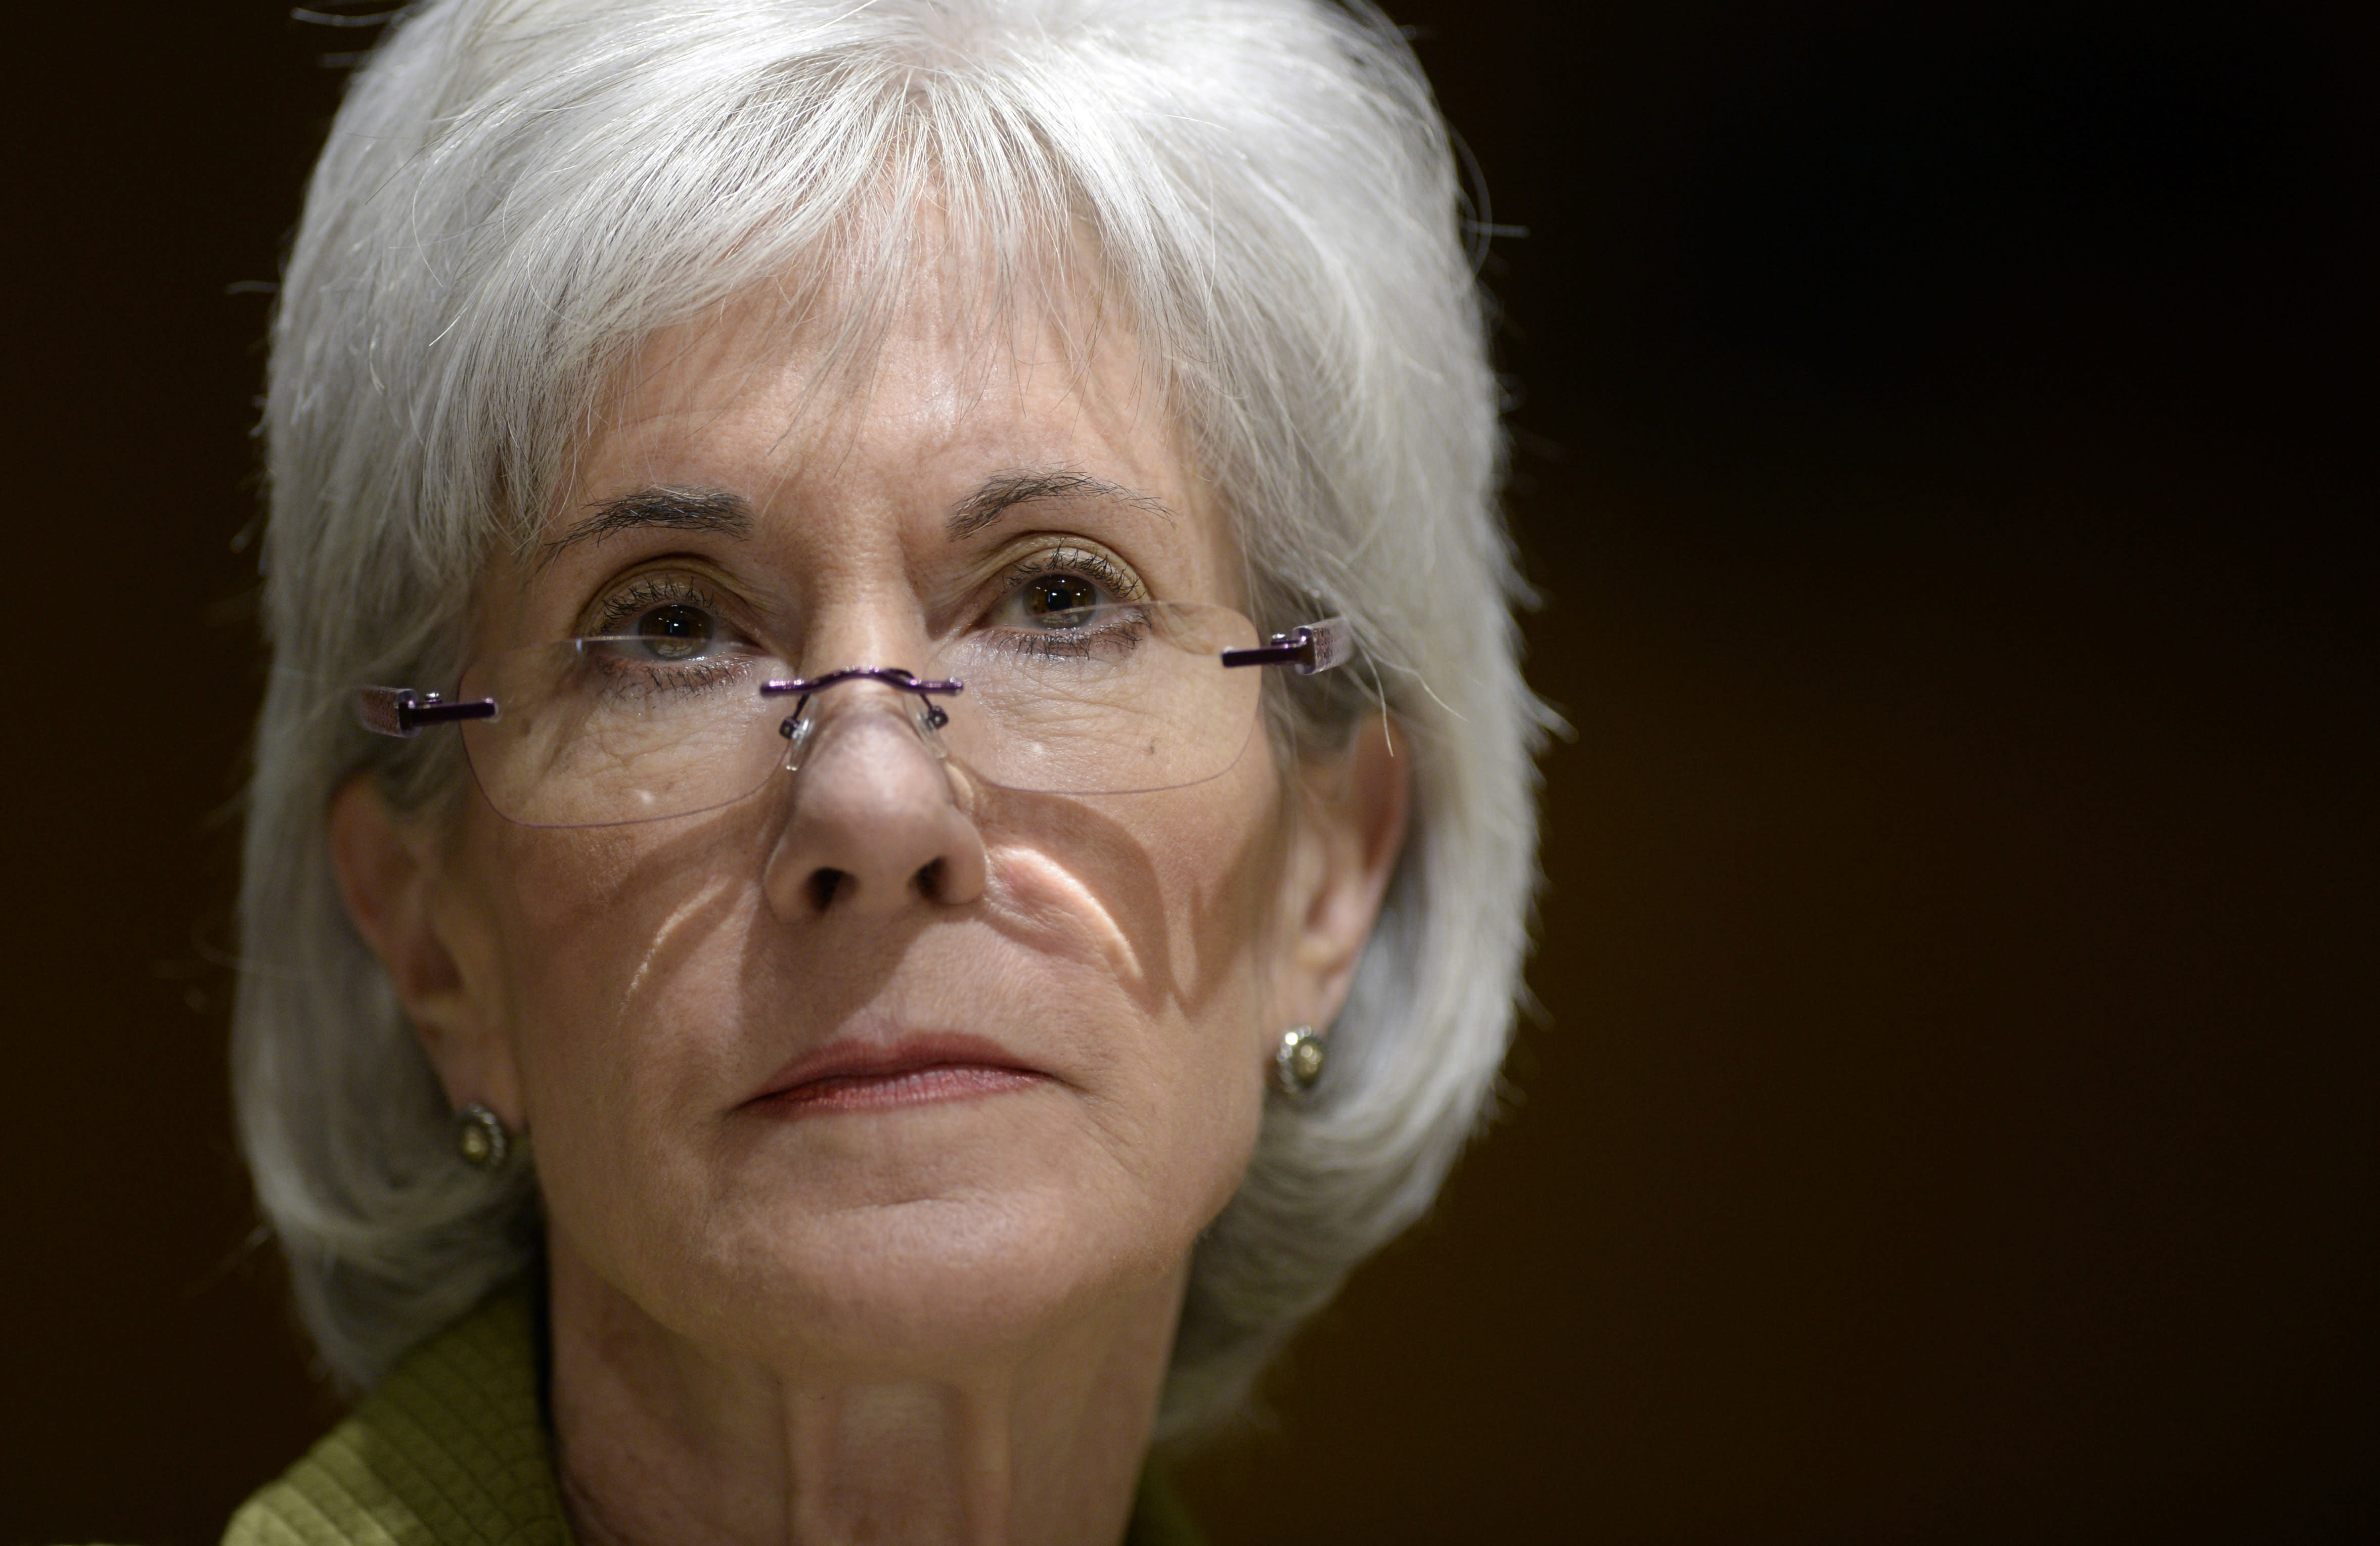 Health and Human Services Secretary Kathleen Sebelius listens as she testifies on Capitol Hill in Washington, Thursday, April 10, 2014, before the Senate Finance Committee hearing on the HHS Department's fiscal Year 2015 budget. A White House official says Sebelius is resigning from the Obama administration. The move comes just a week after the close of the rocky enrollment period for President Barack Obama's health care law. (AP Photo/Susan Walsh)